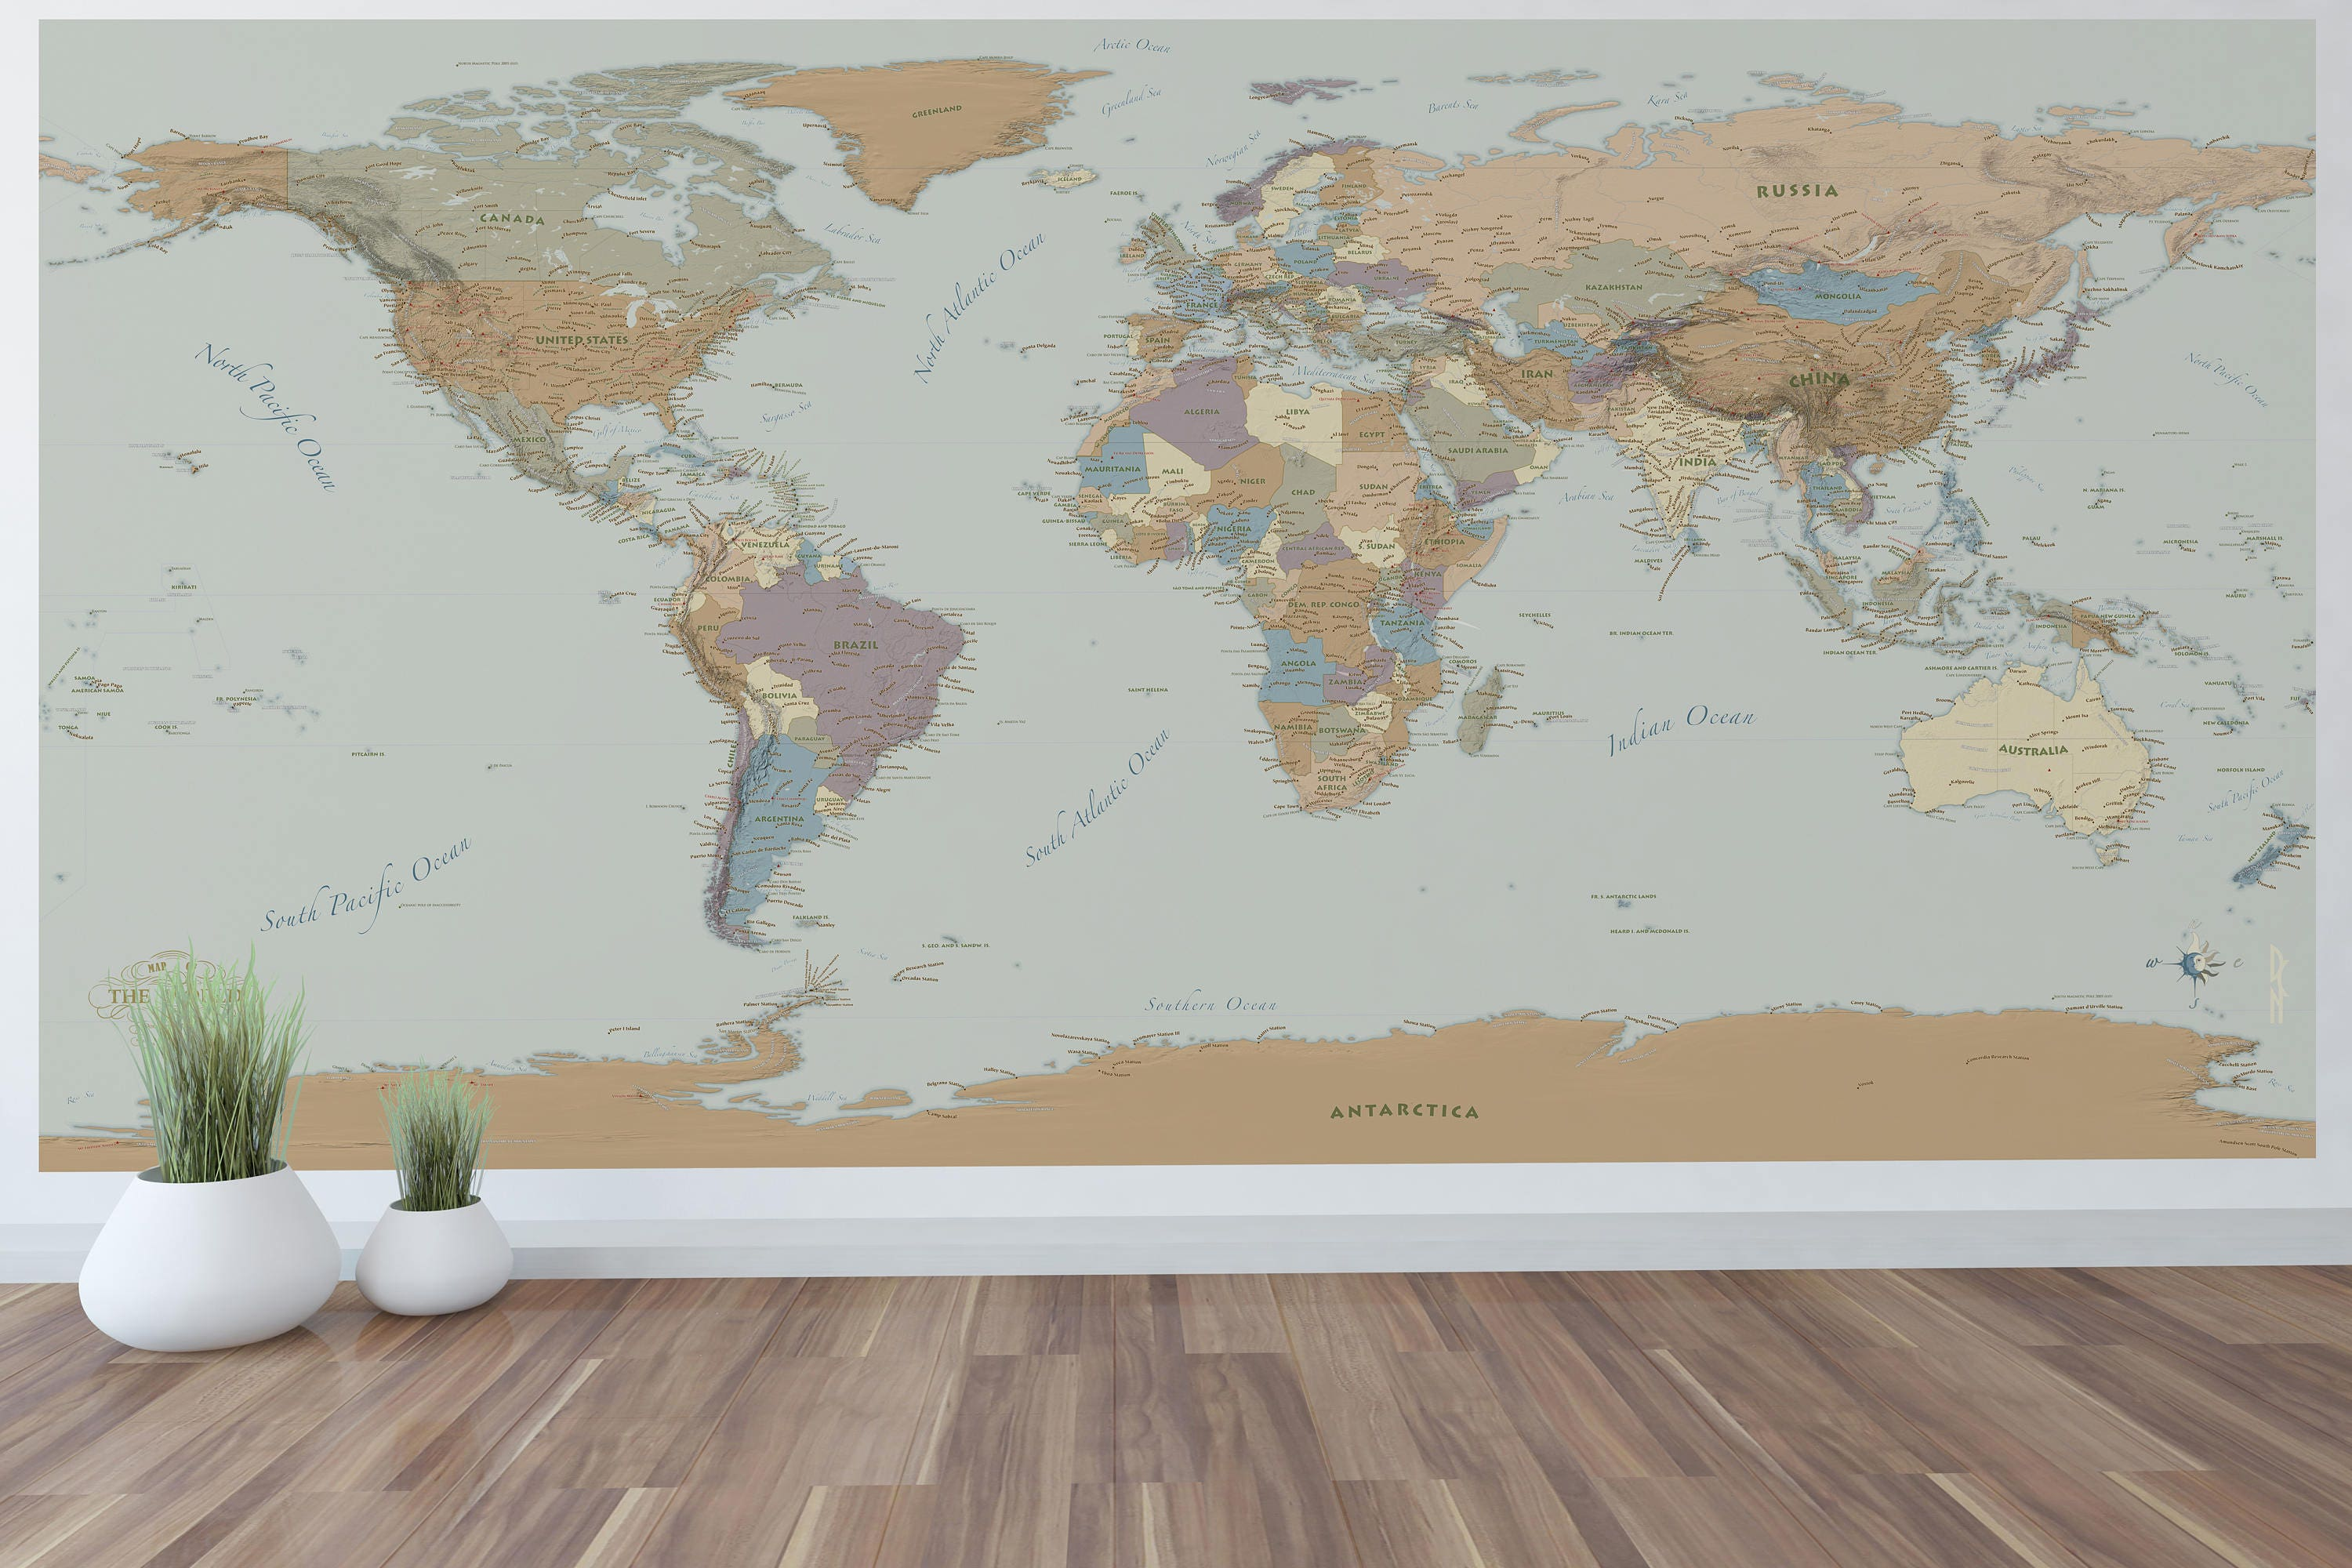 Giant World Map Mural Wall Art World Map Decal 96x48 with ...